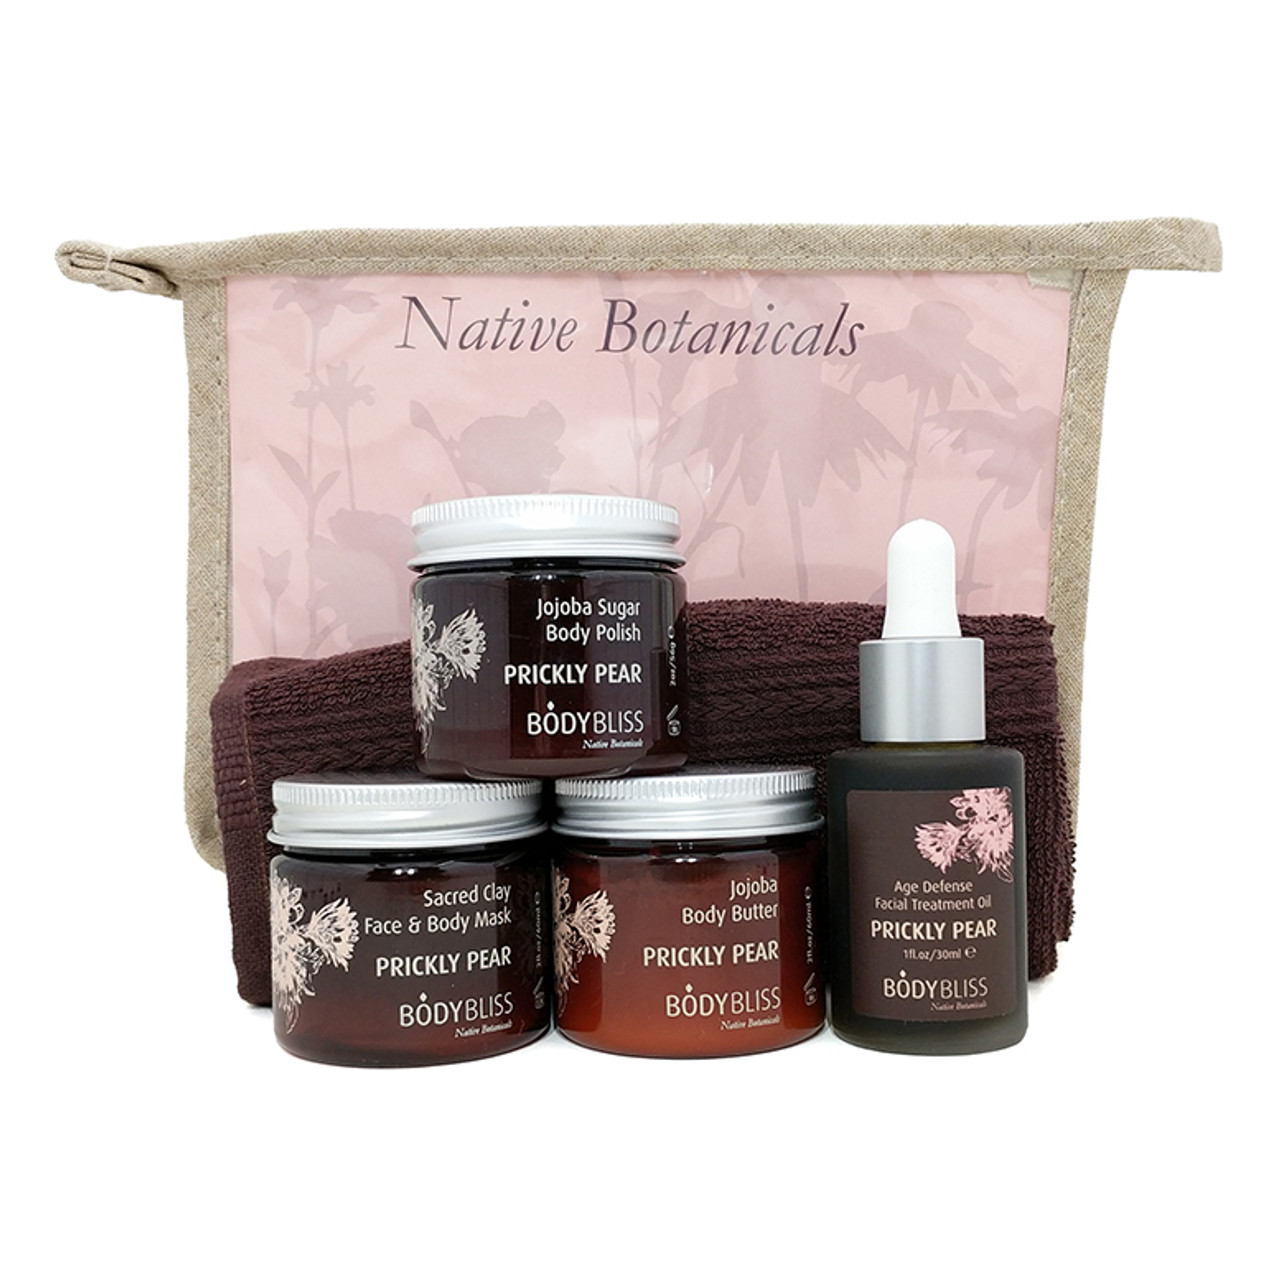 Prickly Pear Home Spa Kit